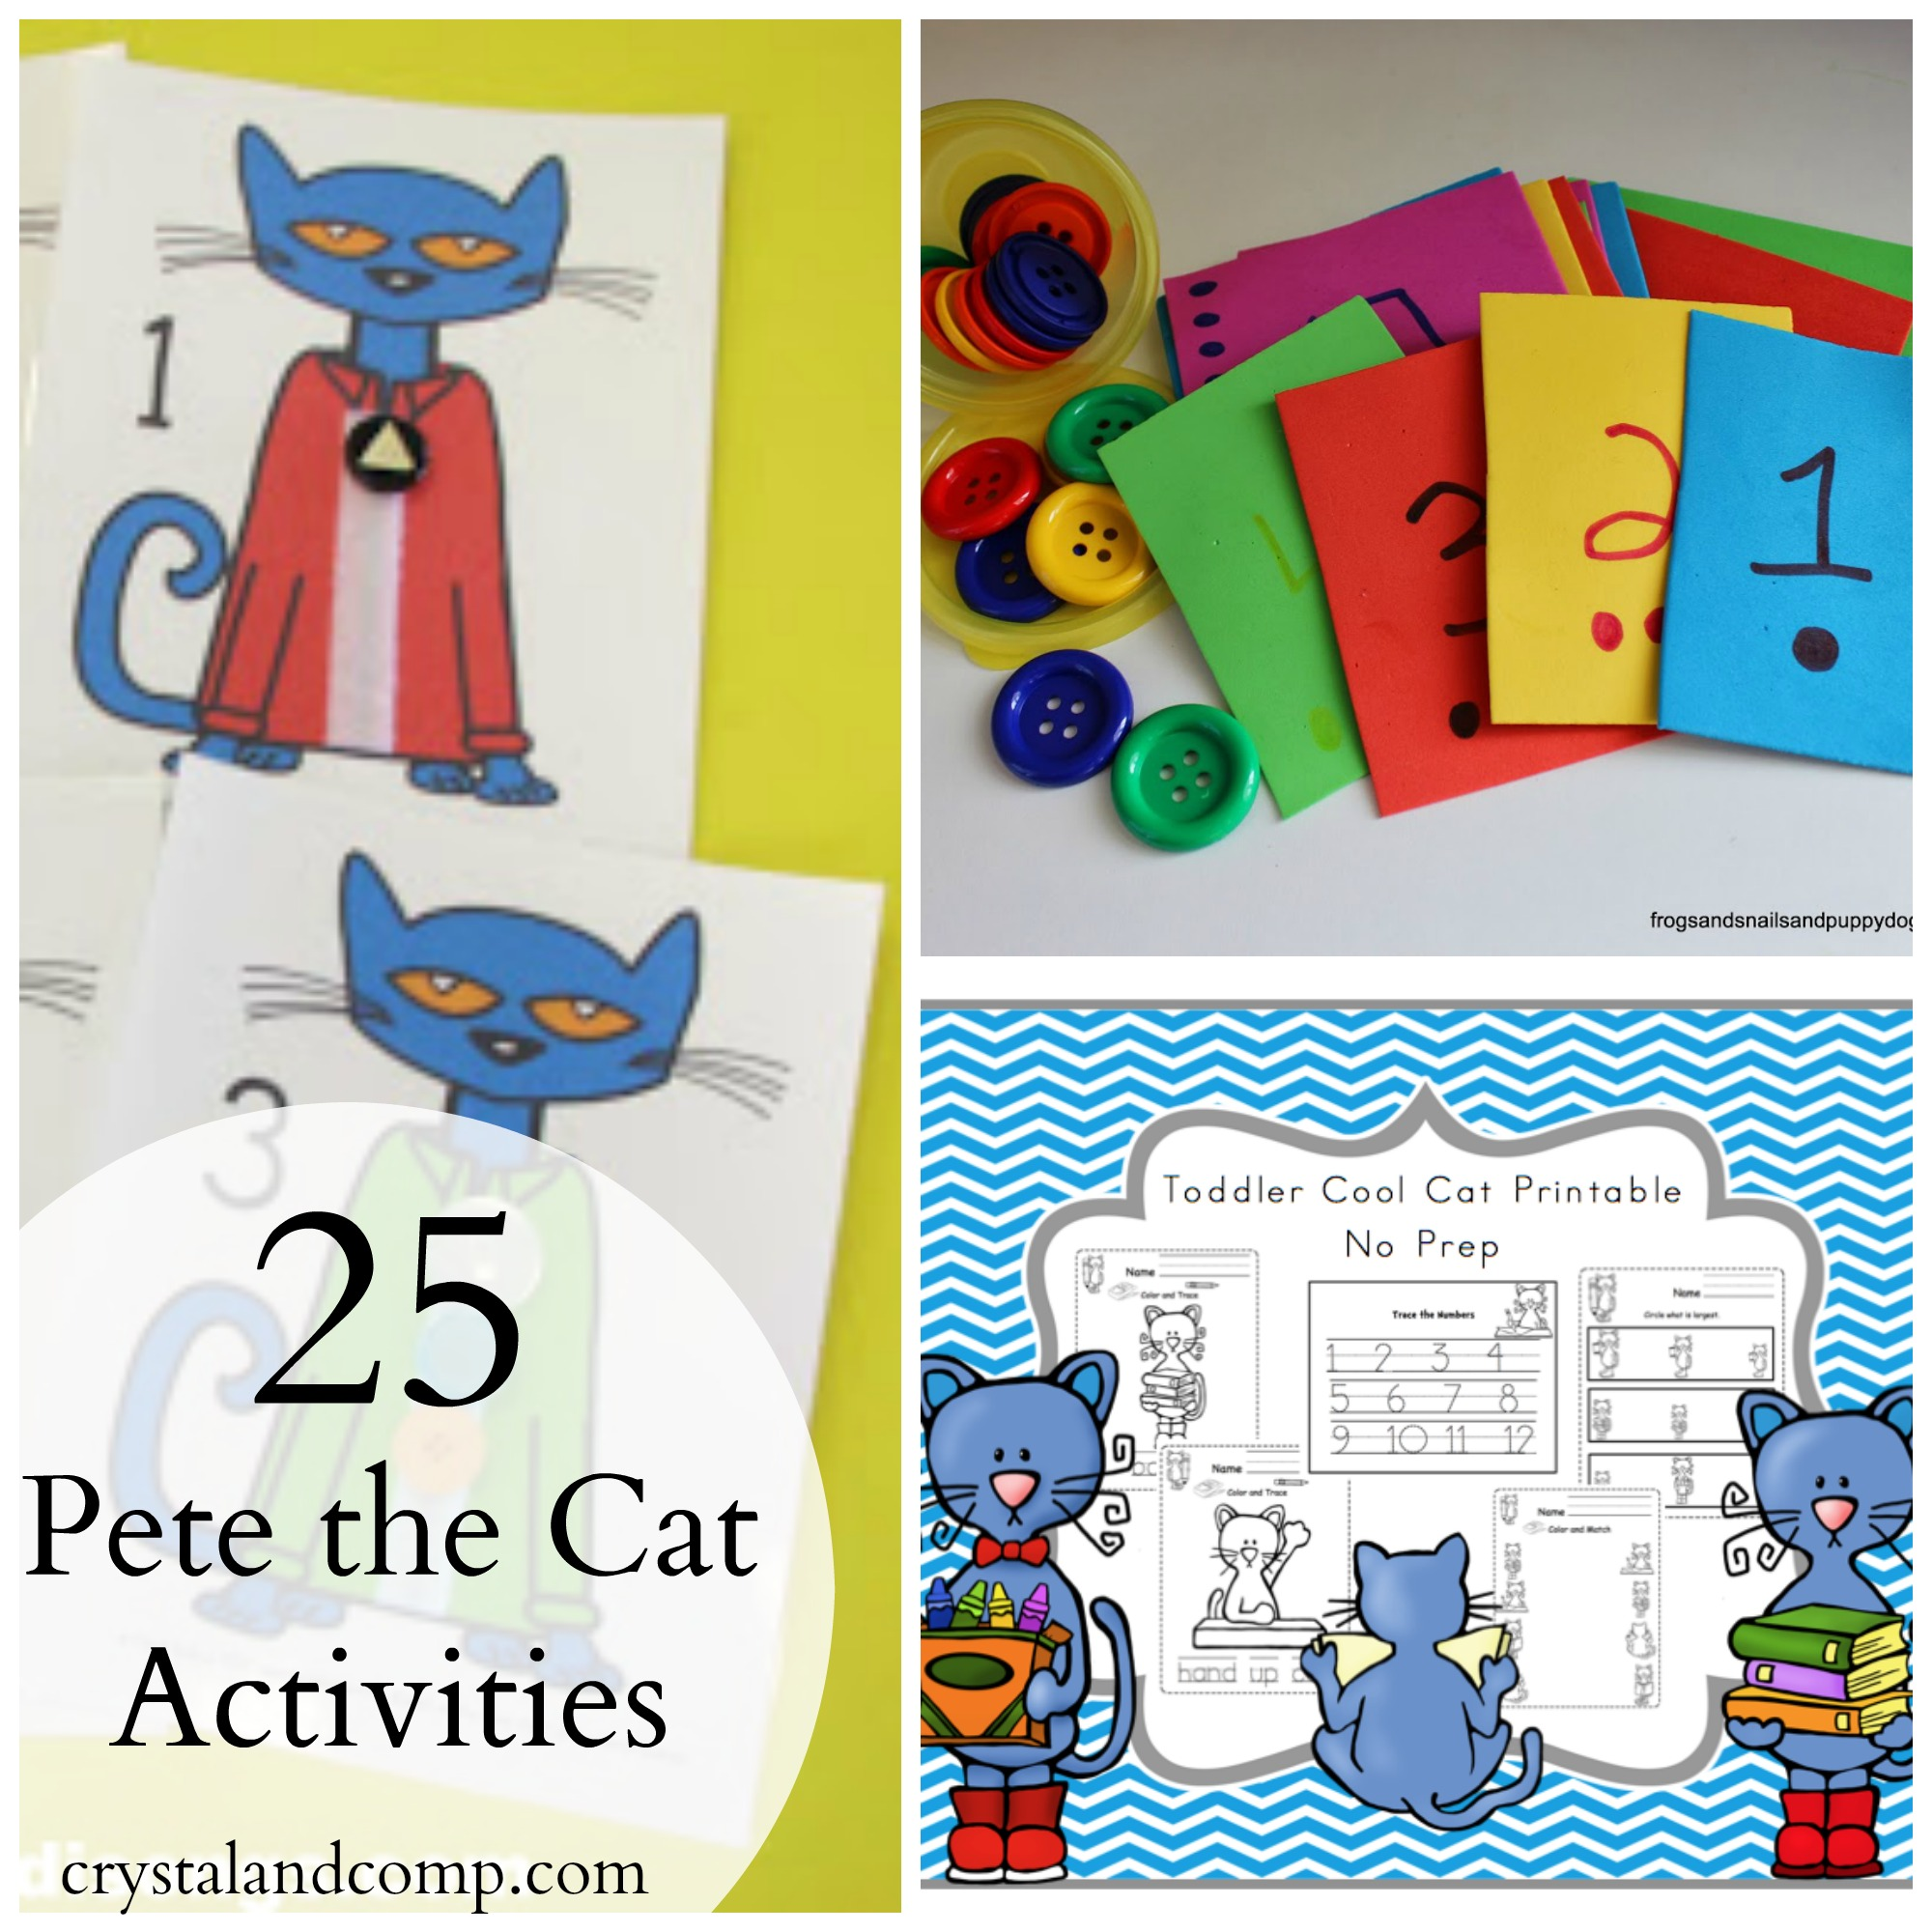 photograph about Pete the Cat Shoes Printable identify Pete the Cat Printables and Routines